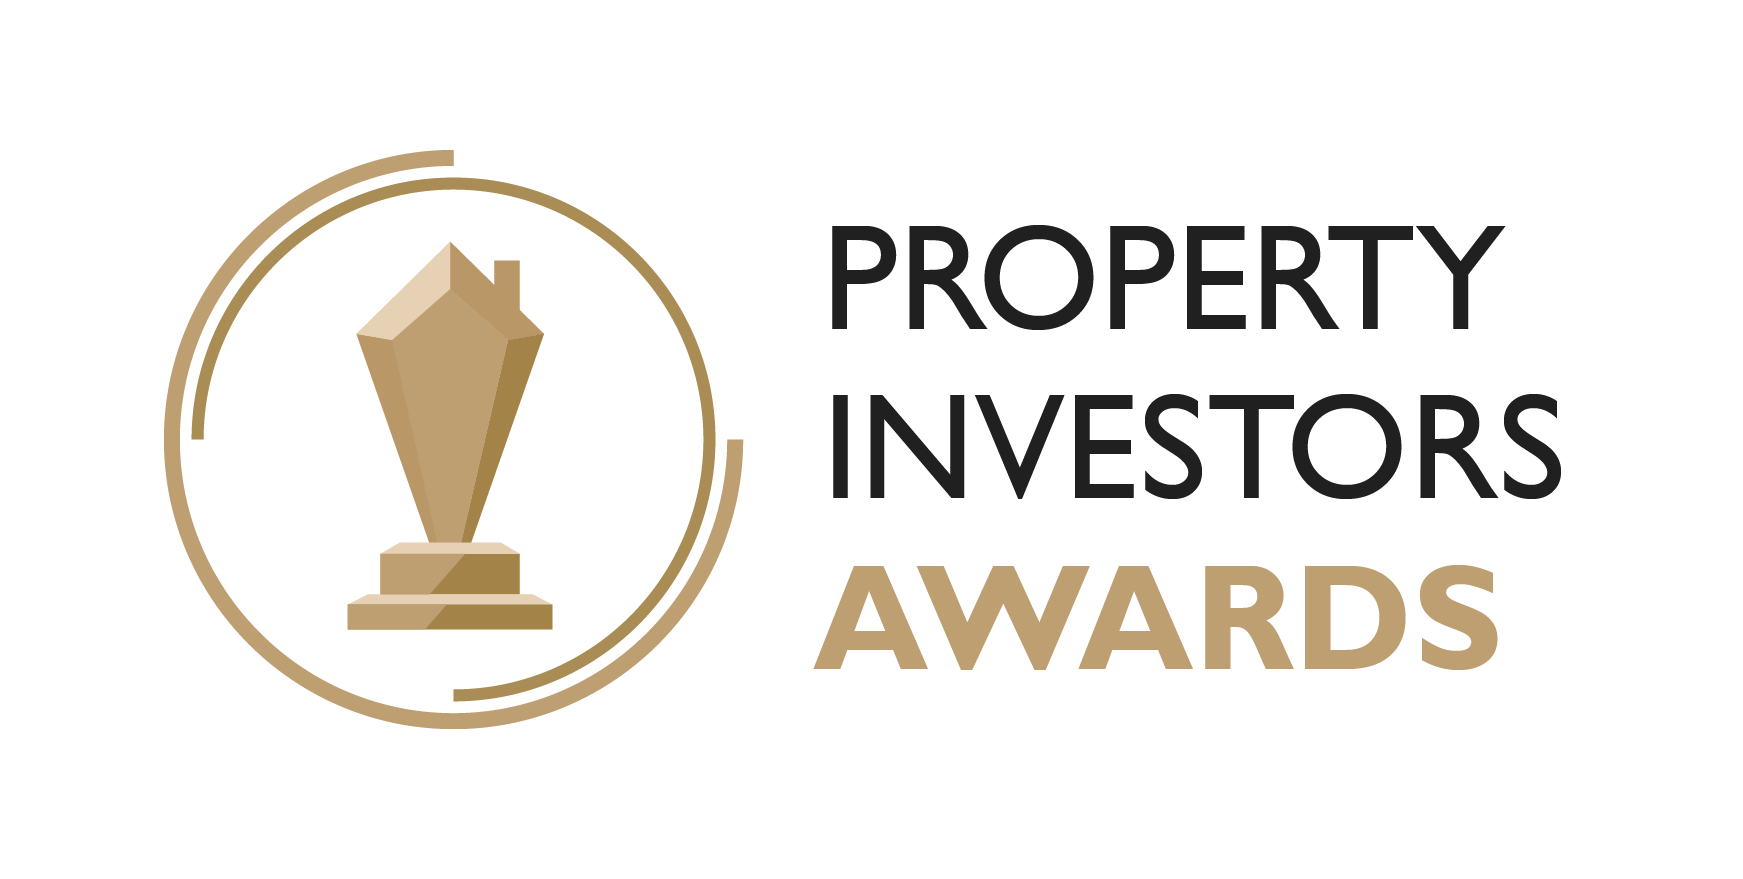 Property Investors Awards Logo